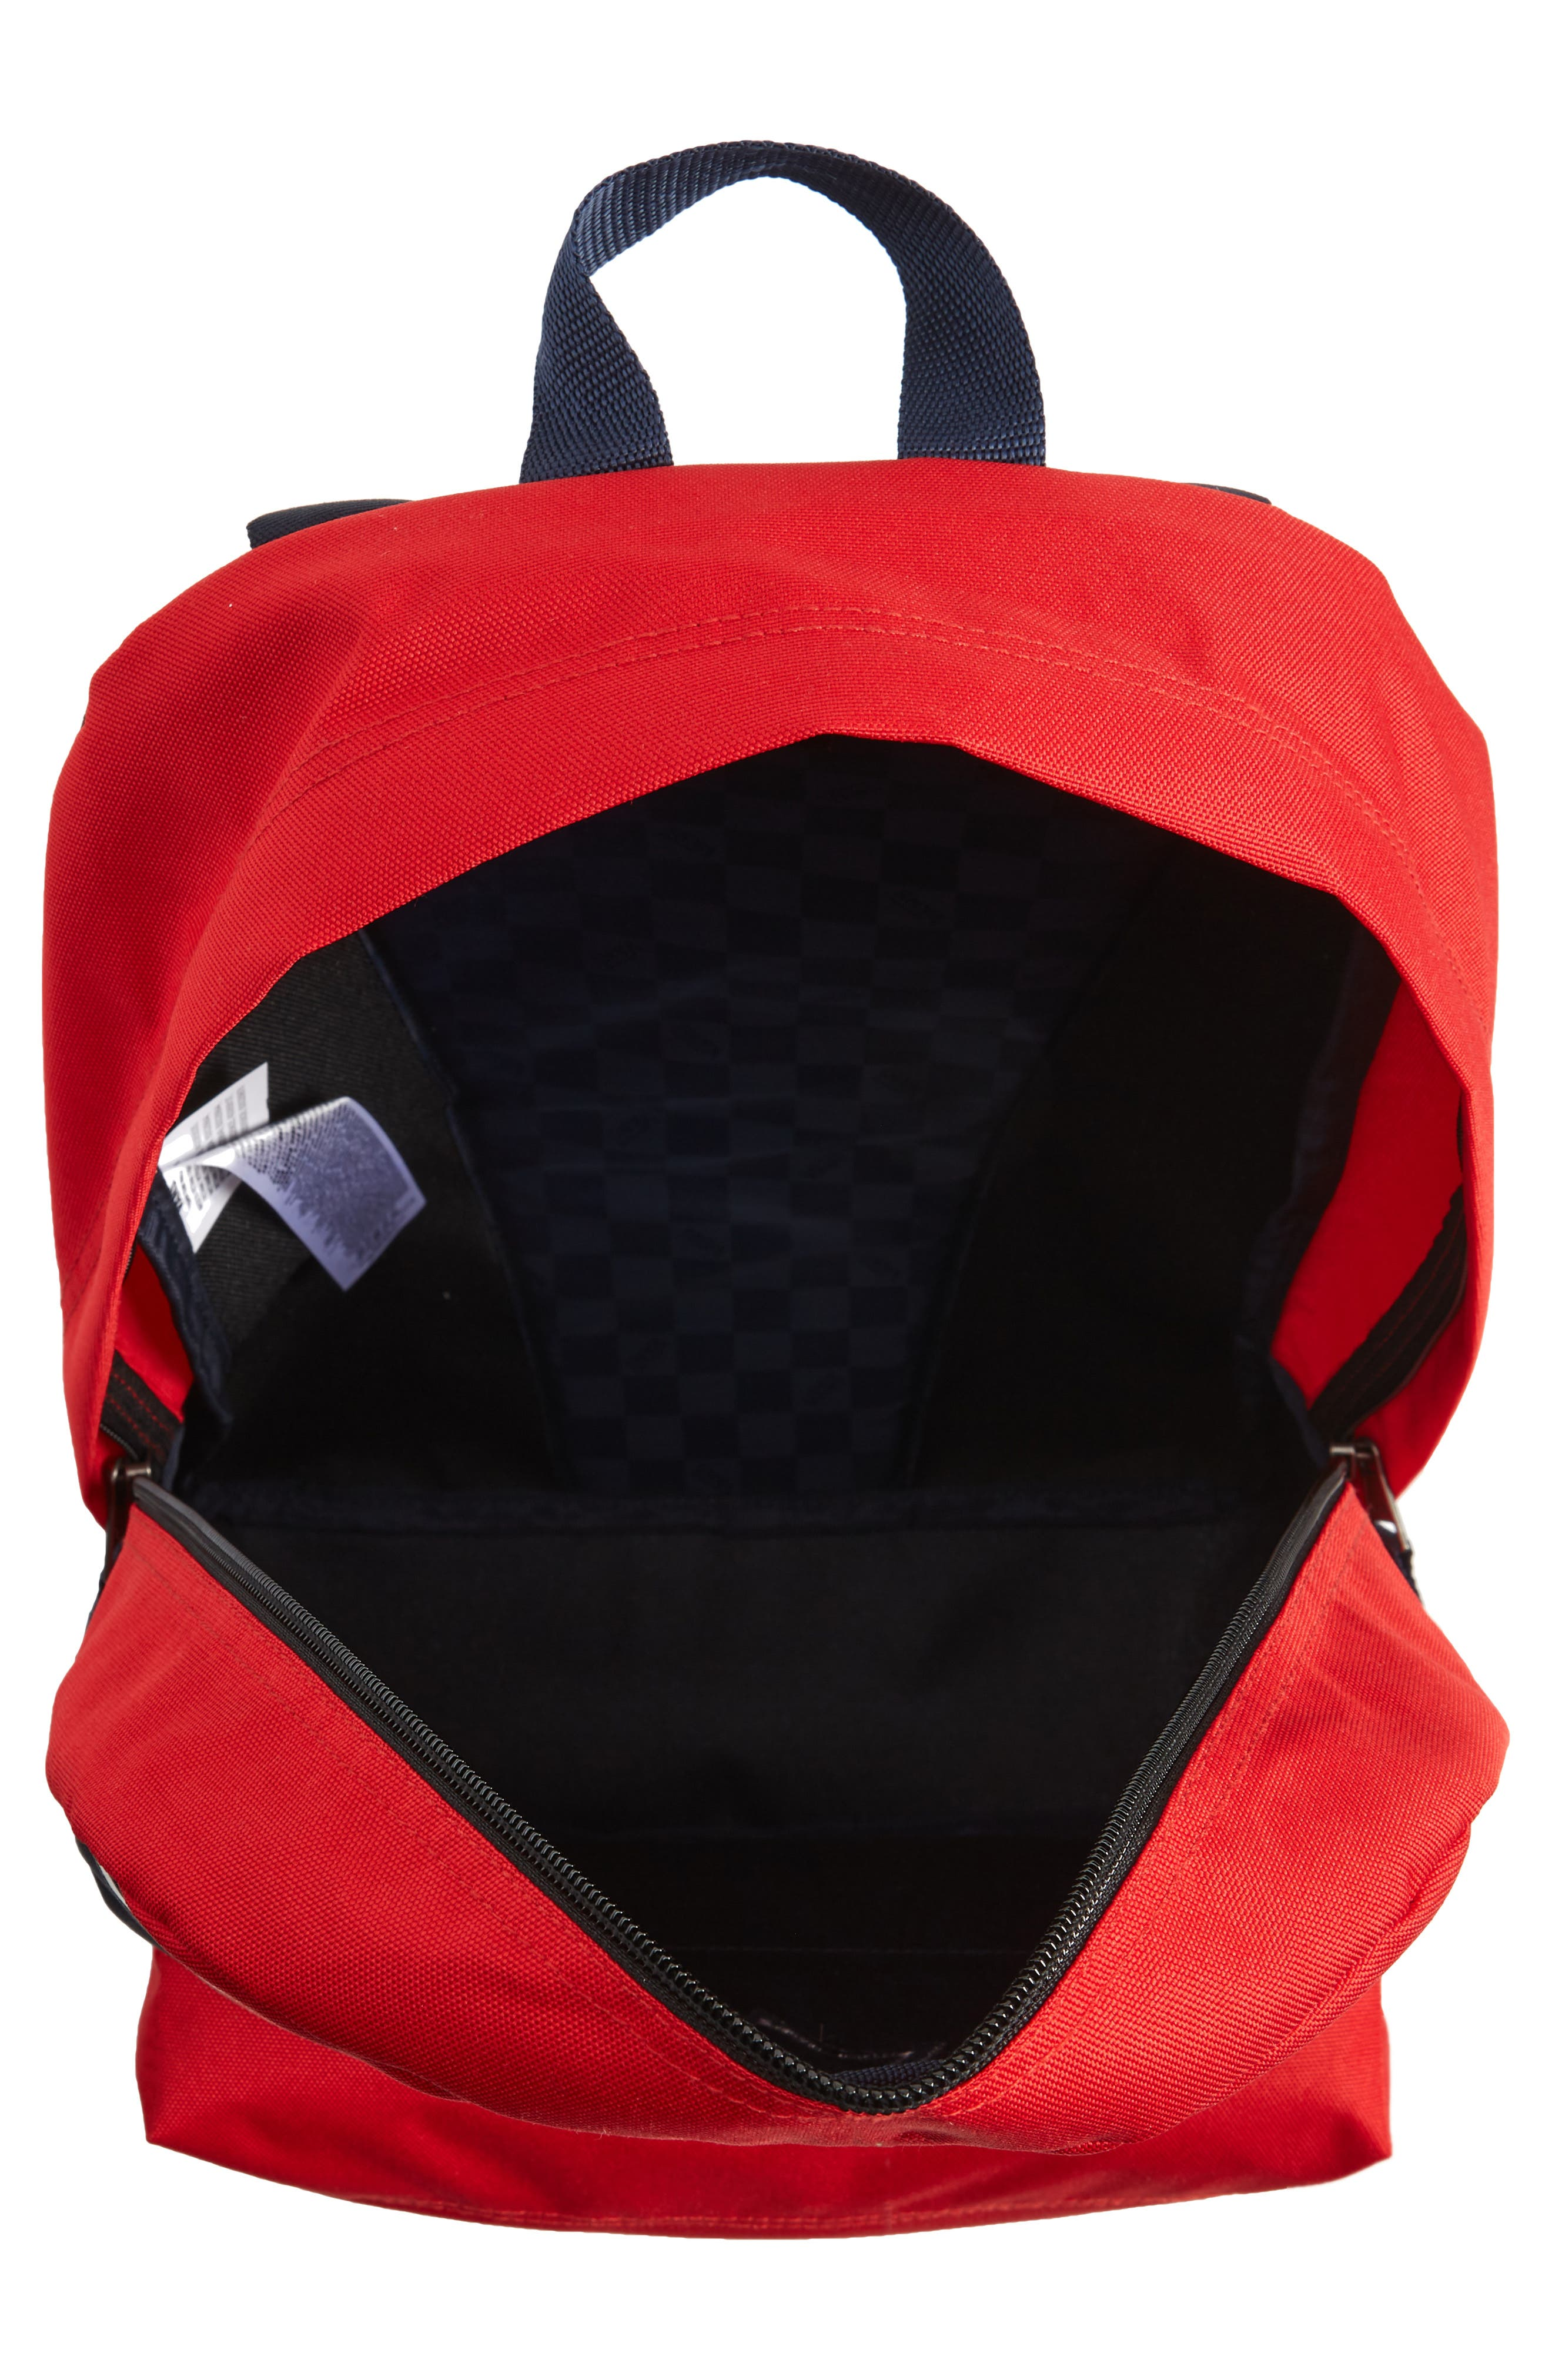 x Marvel<sup>®</sup> Captain Marvel Realm Backpack,                             Alternate thumbnail 4, color,                             Racing Red